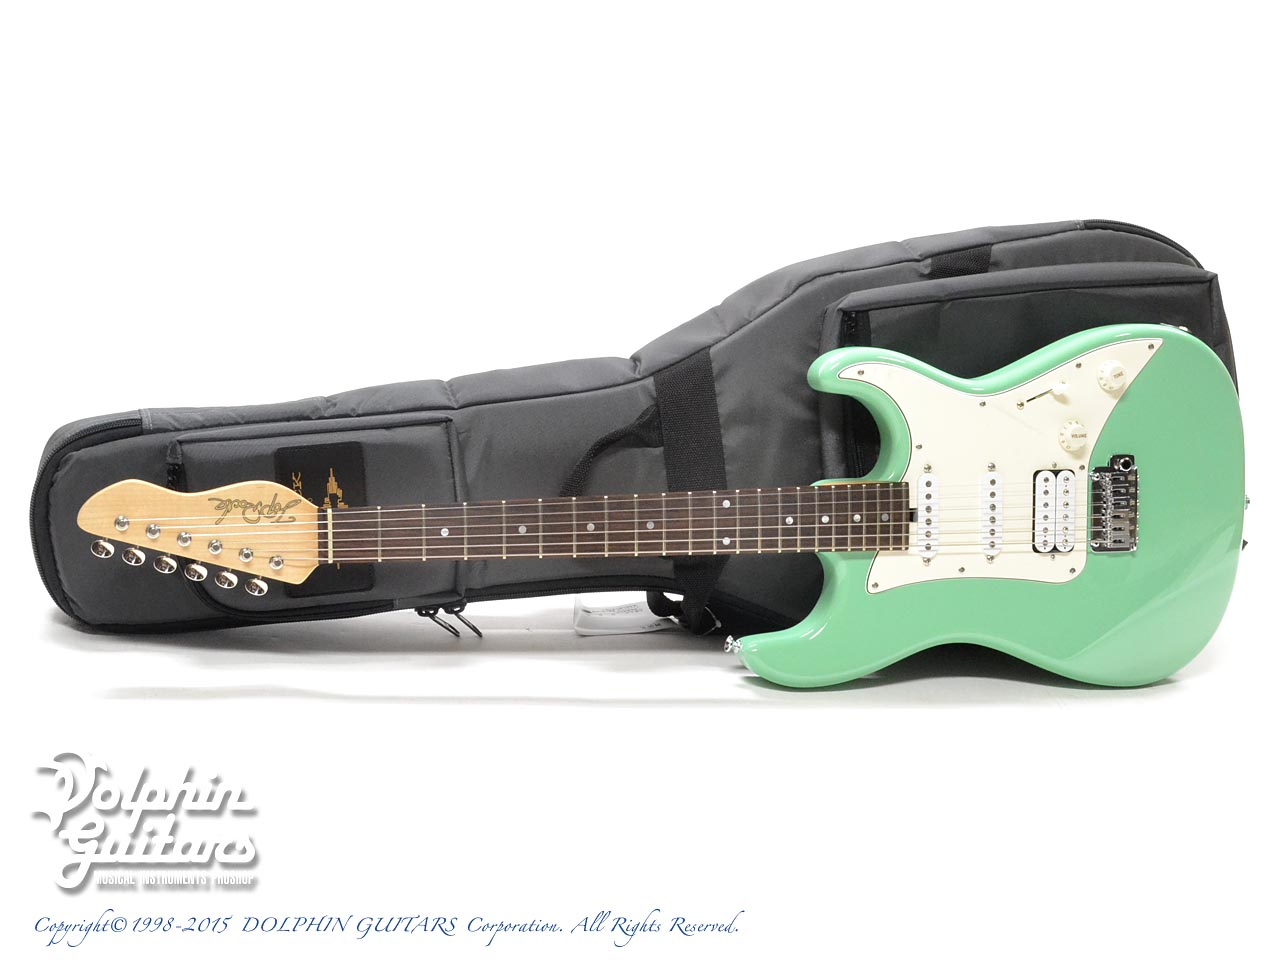 TOPROCK GUITARS: ST-G6 Classic (Sea Form Green) (0)